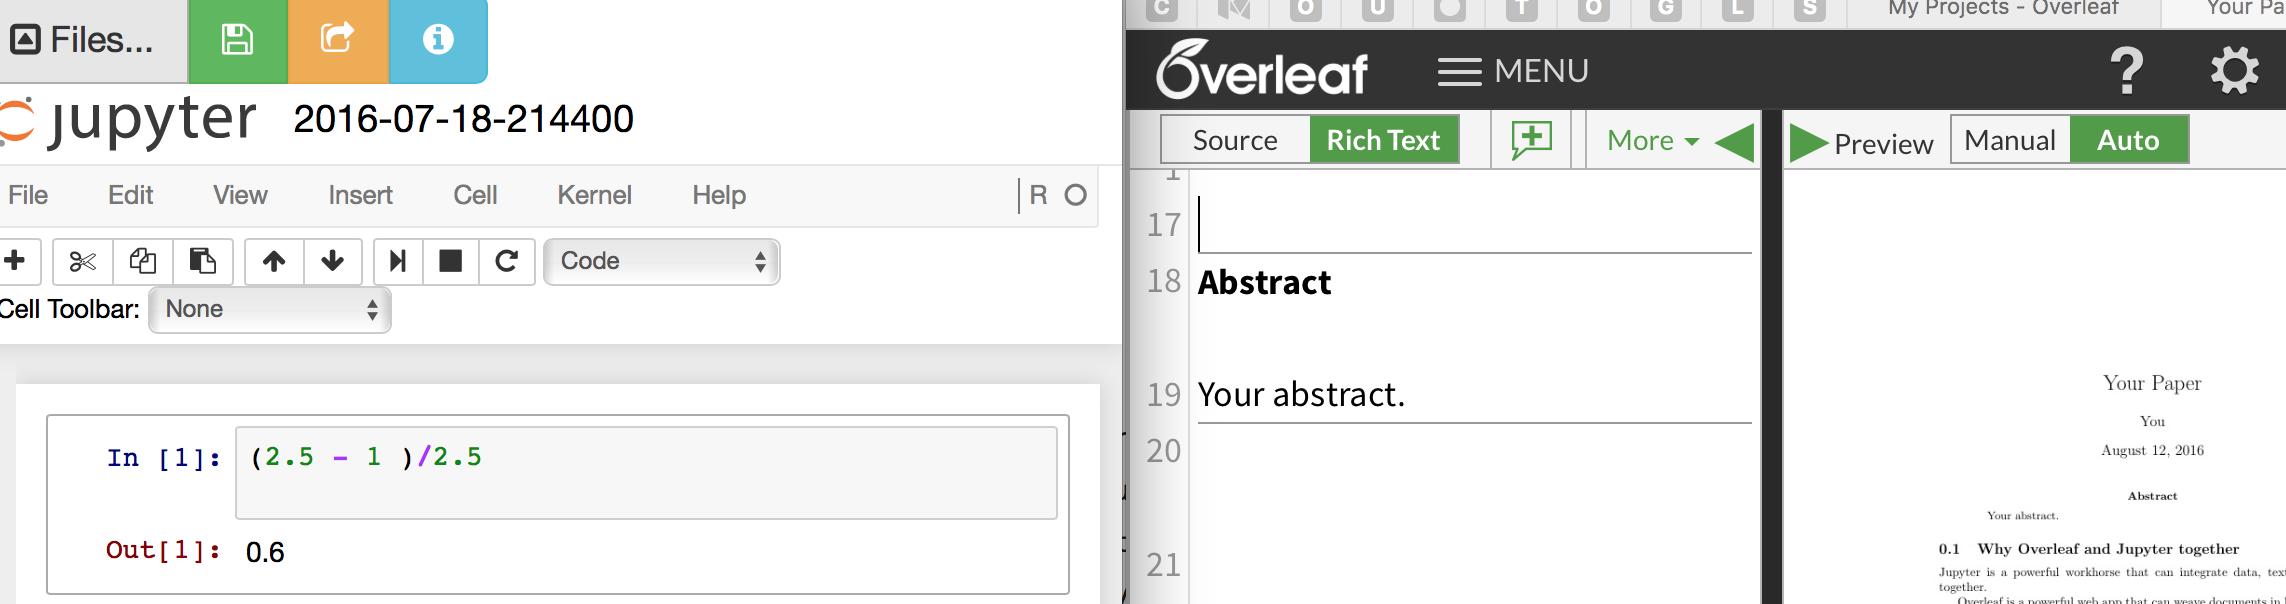 How to update Overleaf from a Juypter Notebook - Web